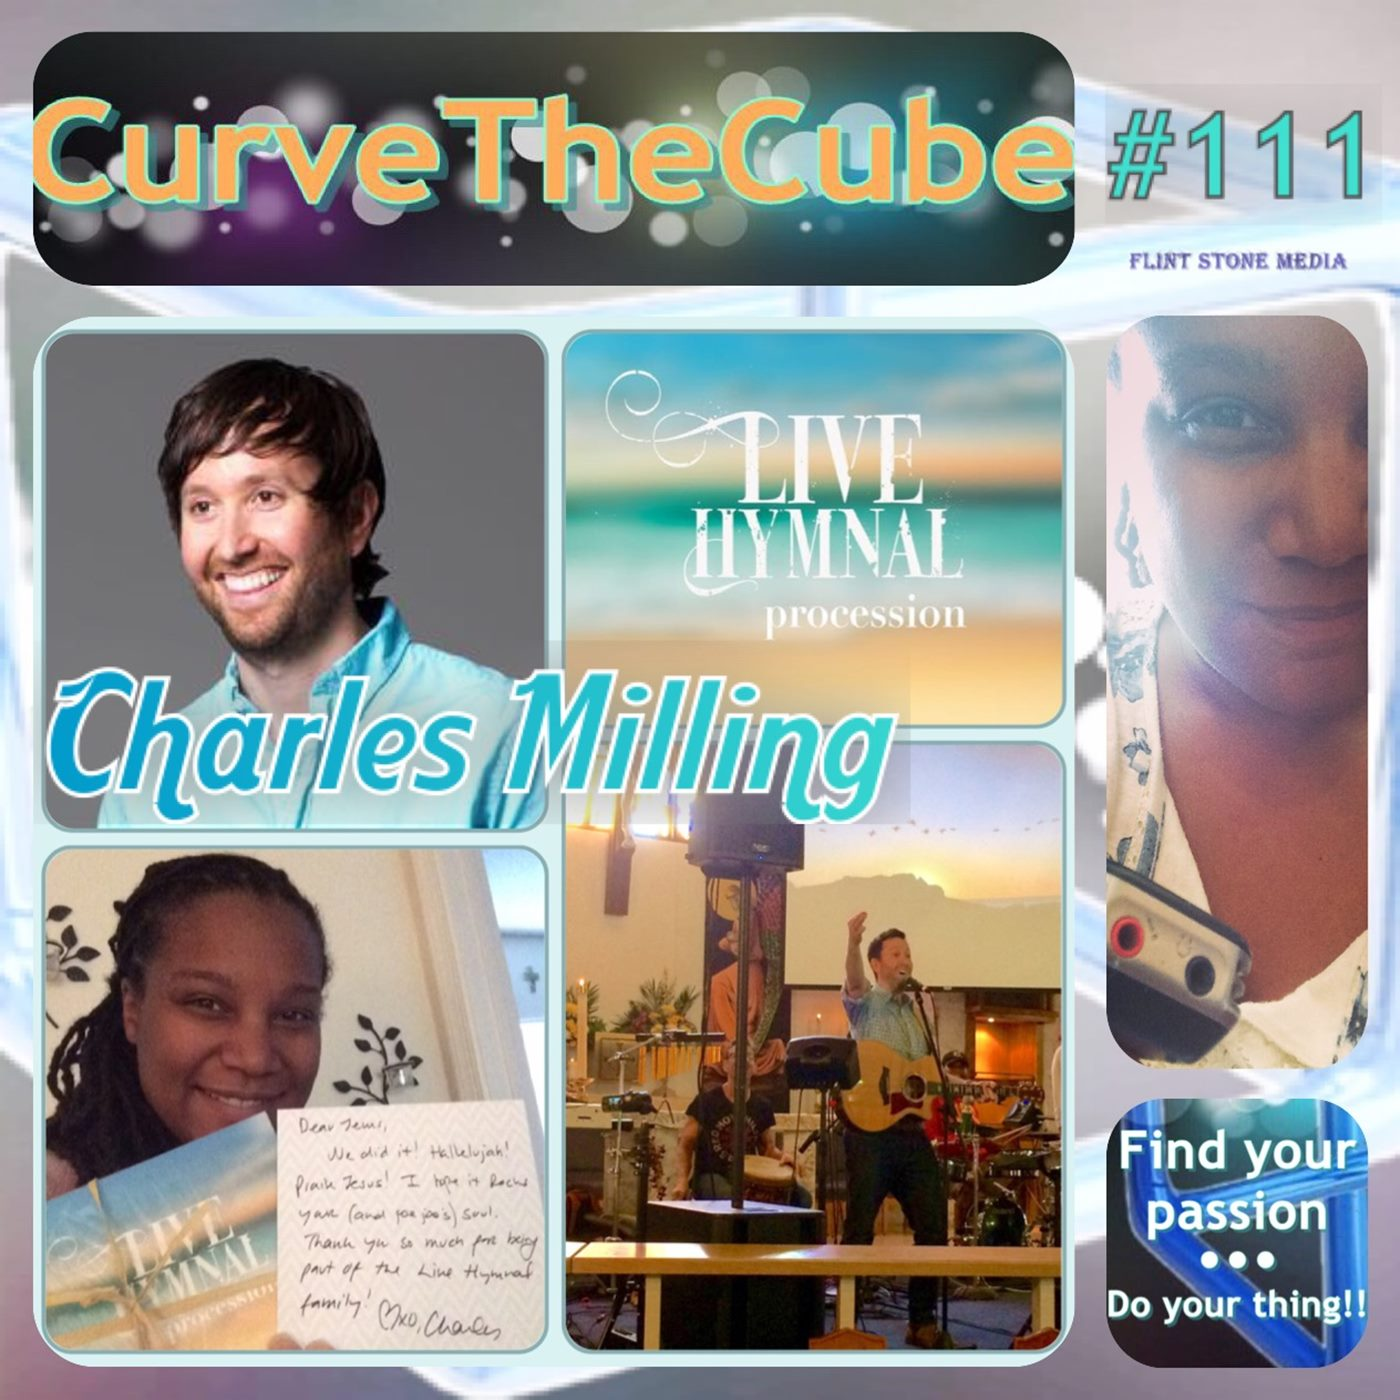 Charles Milling of Live Hymnal on the Curve the Cube Podcast